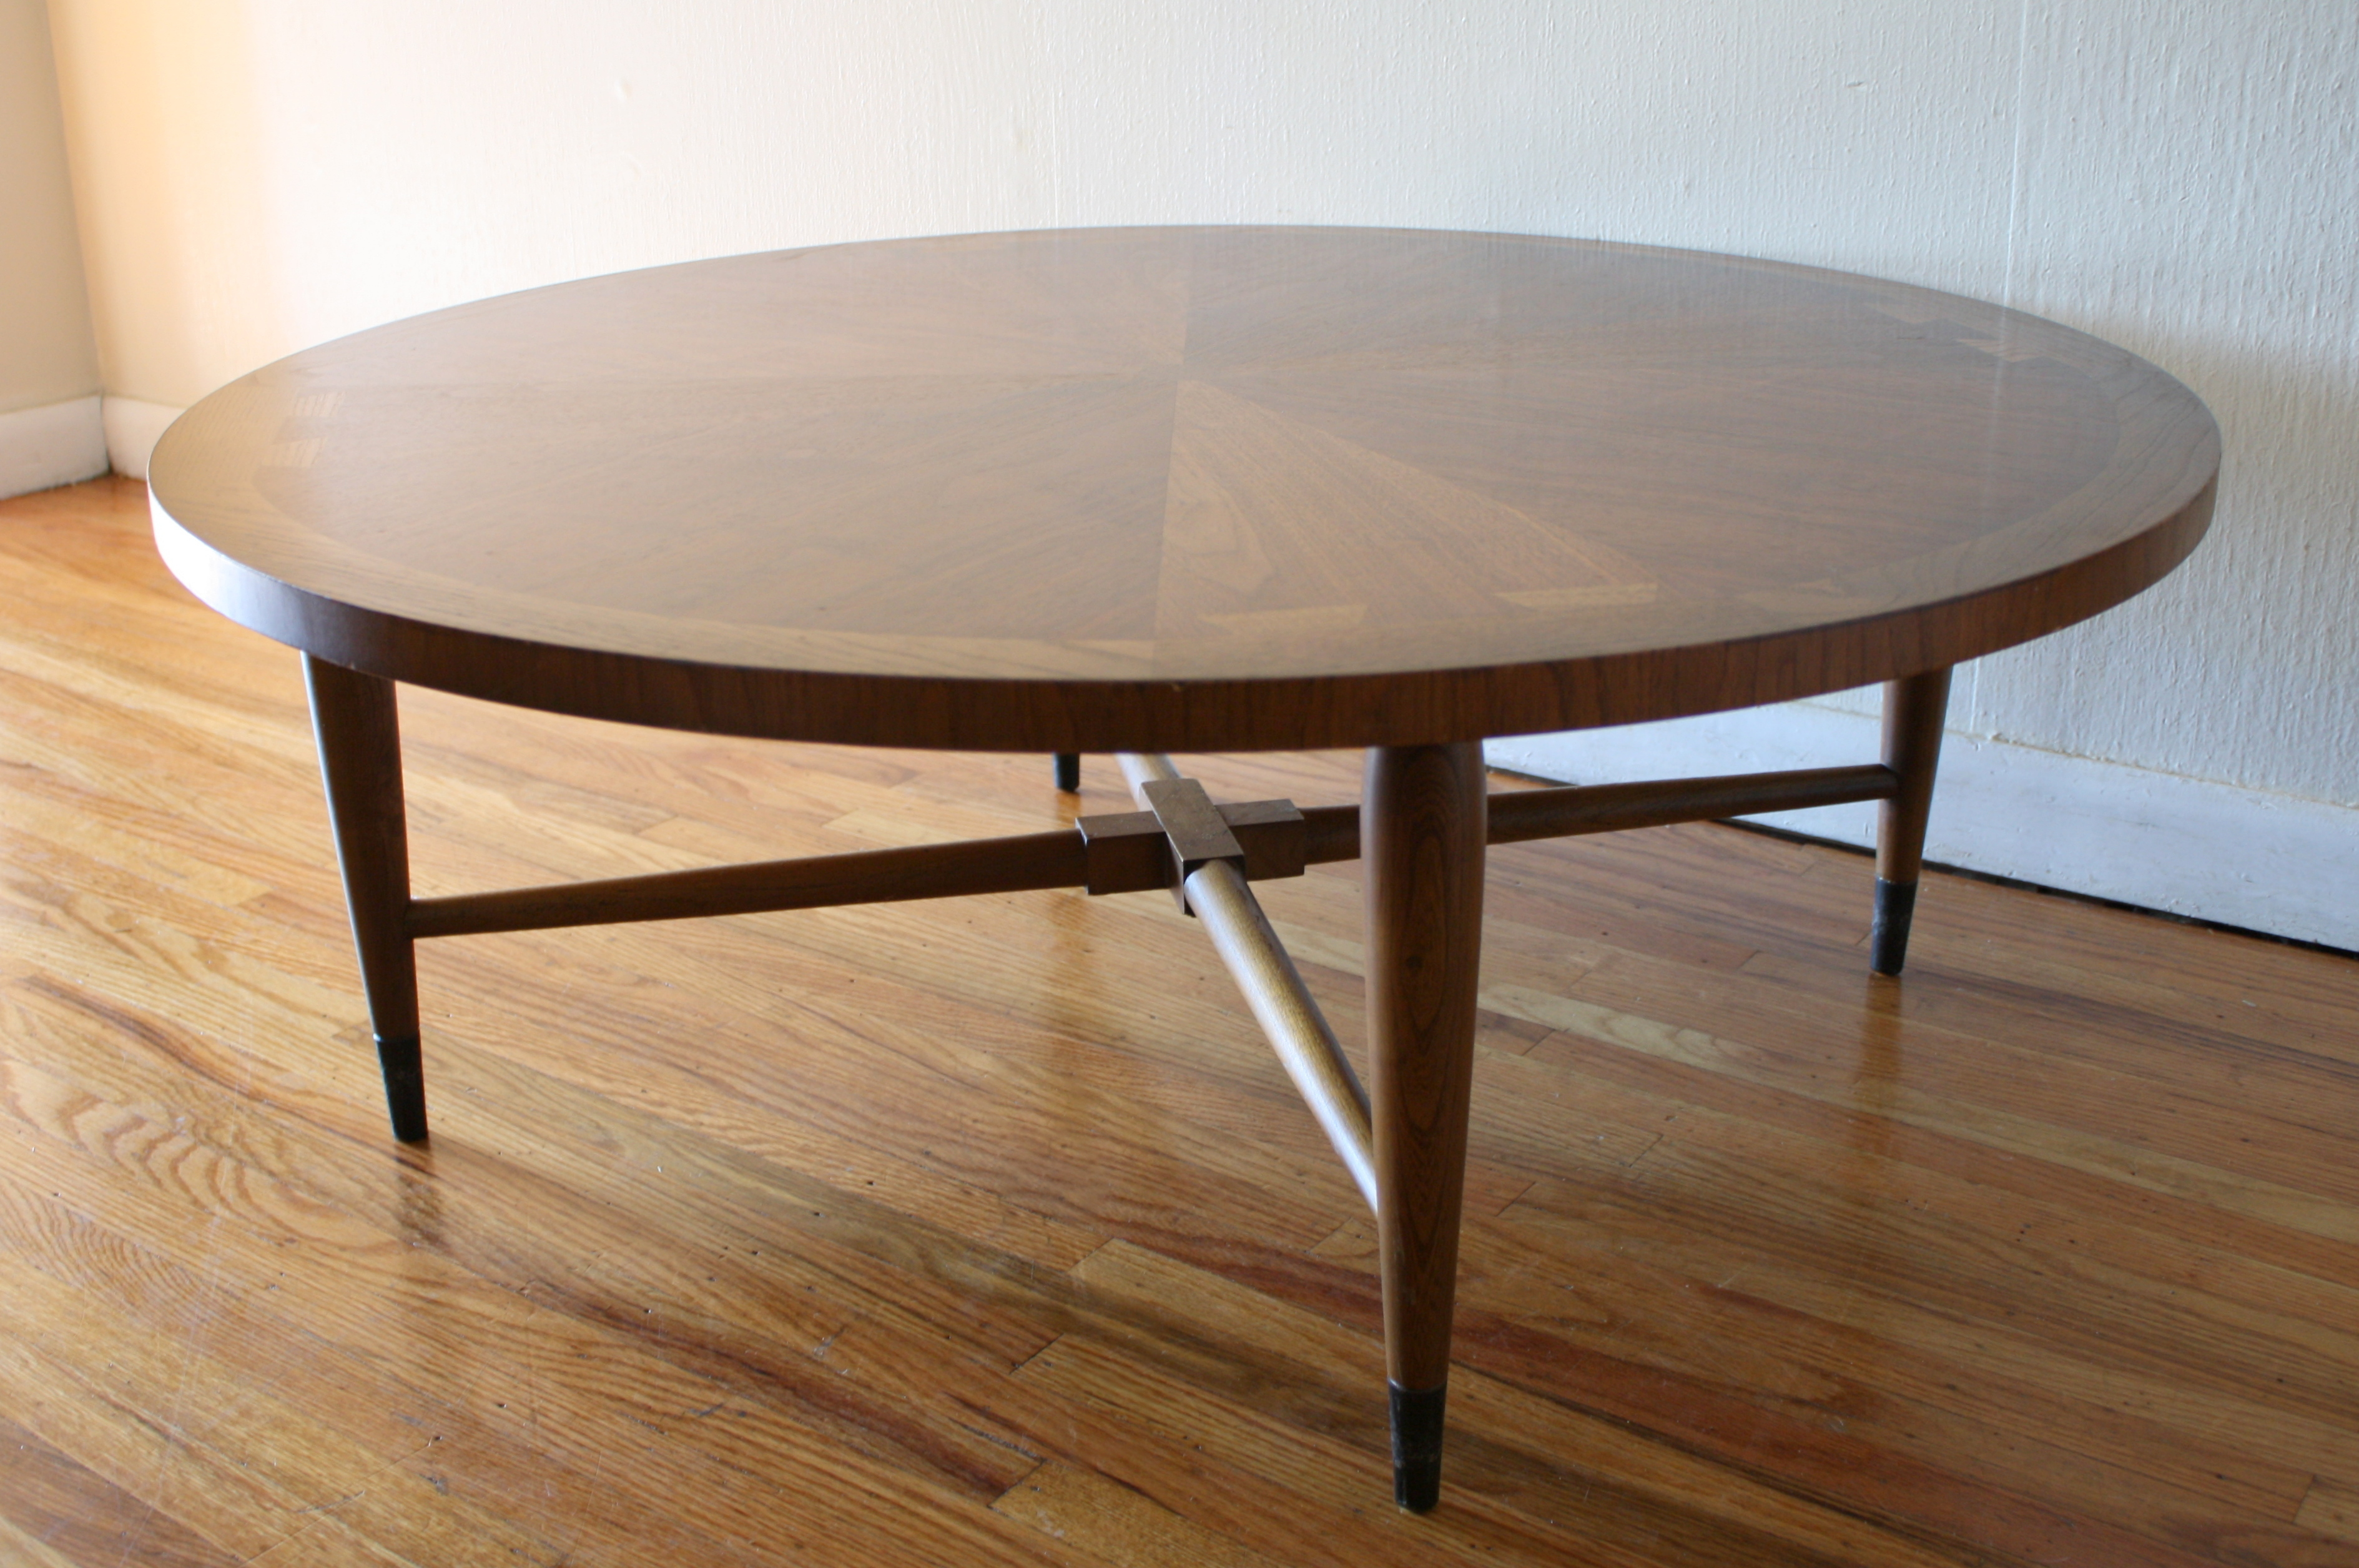 Coffee Table And Dining Table In One Lane Acclaim Dovetail Coffee Table And Dining Table Picked